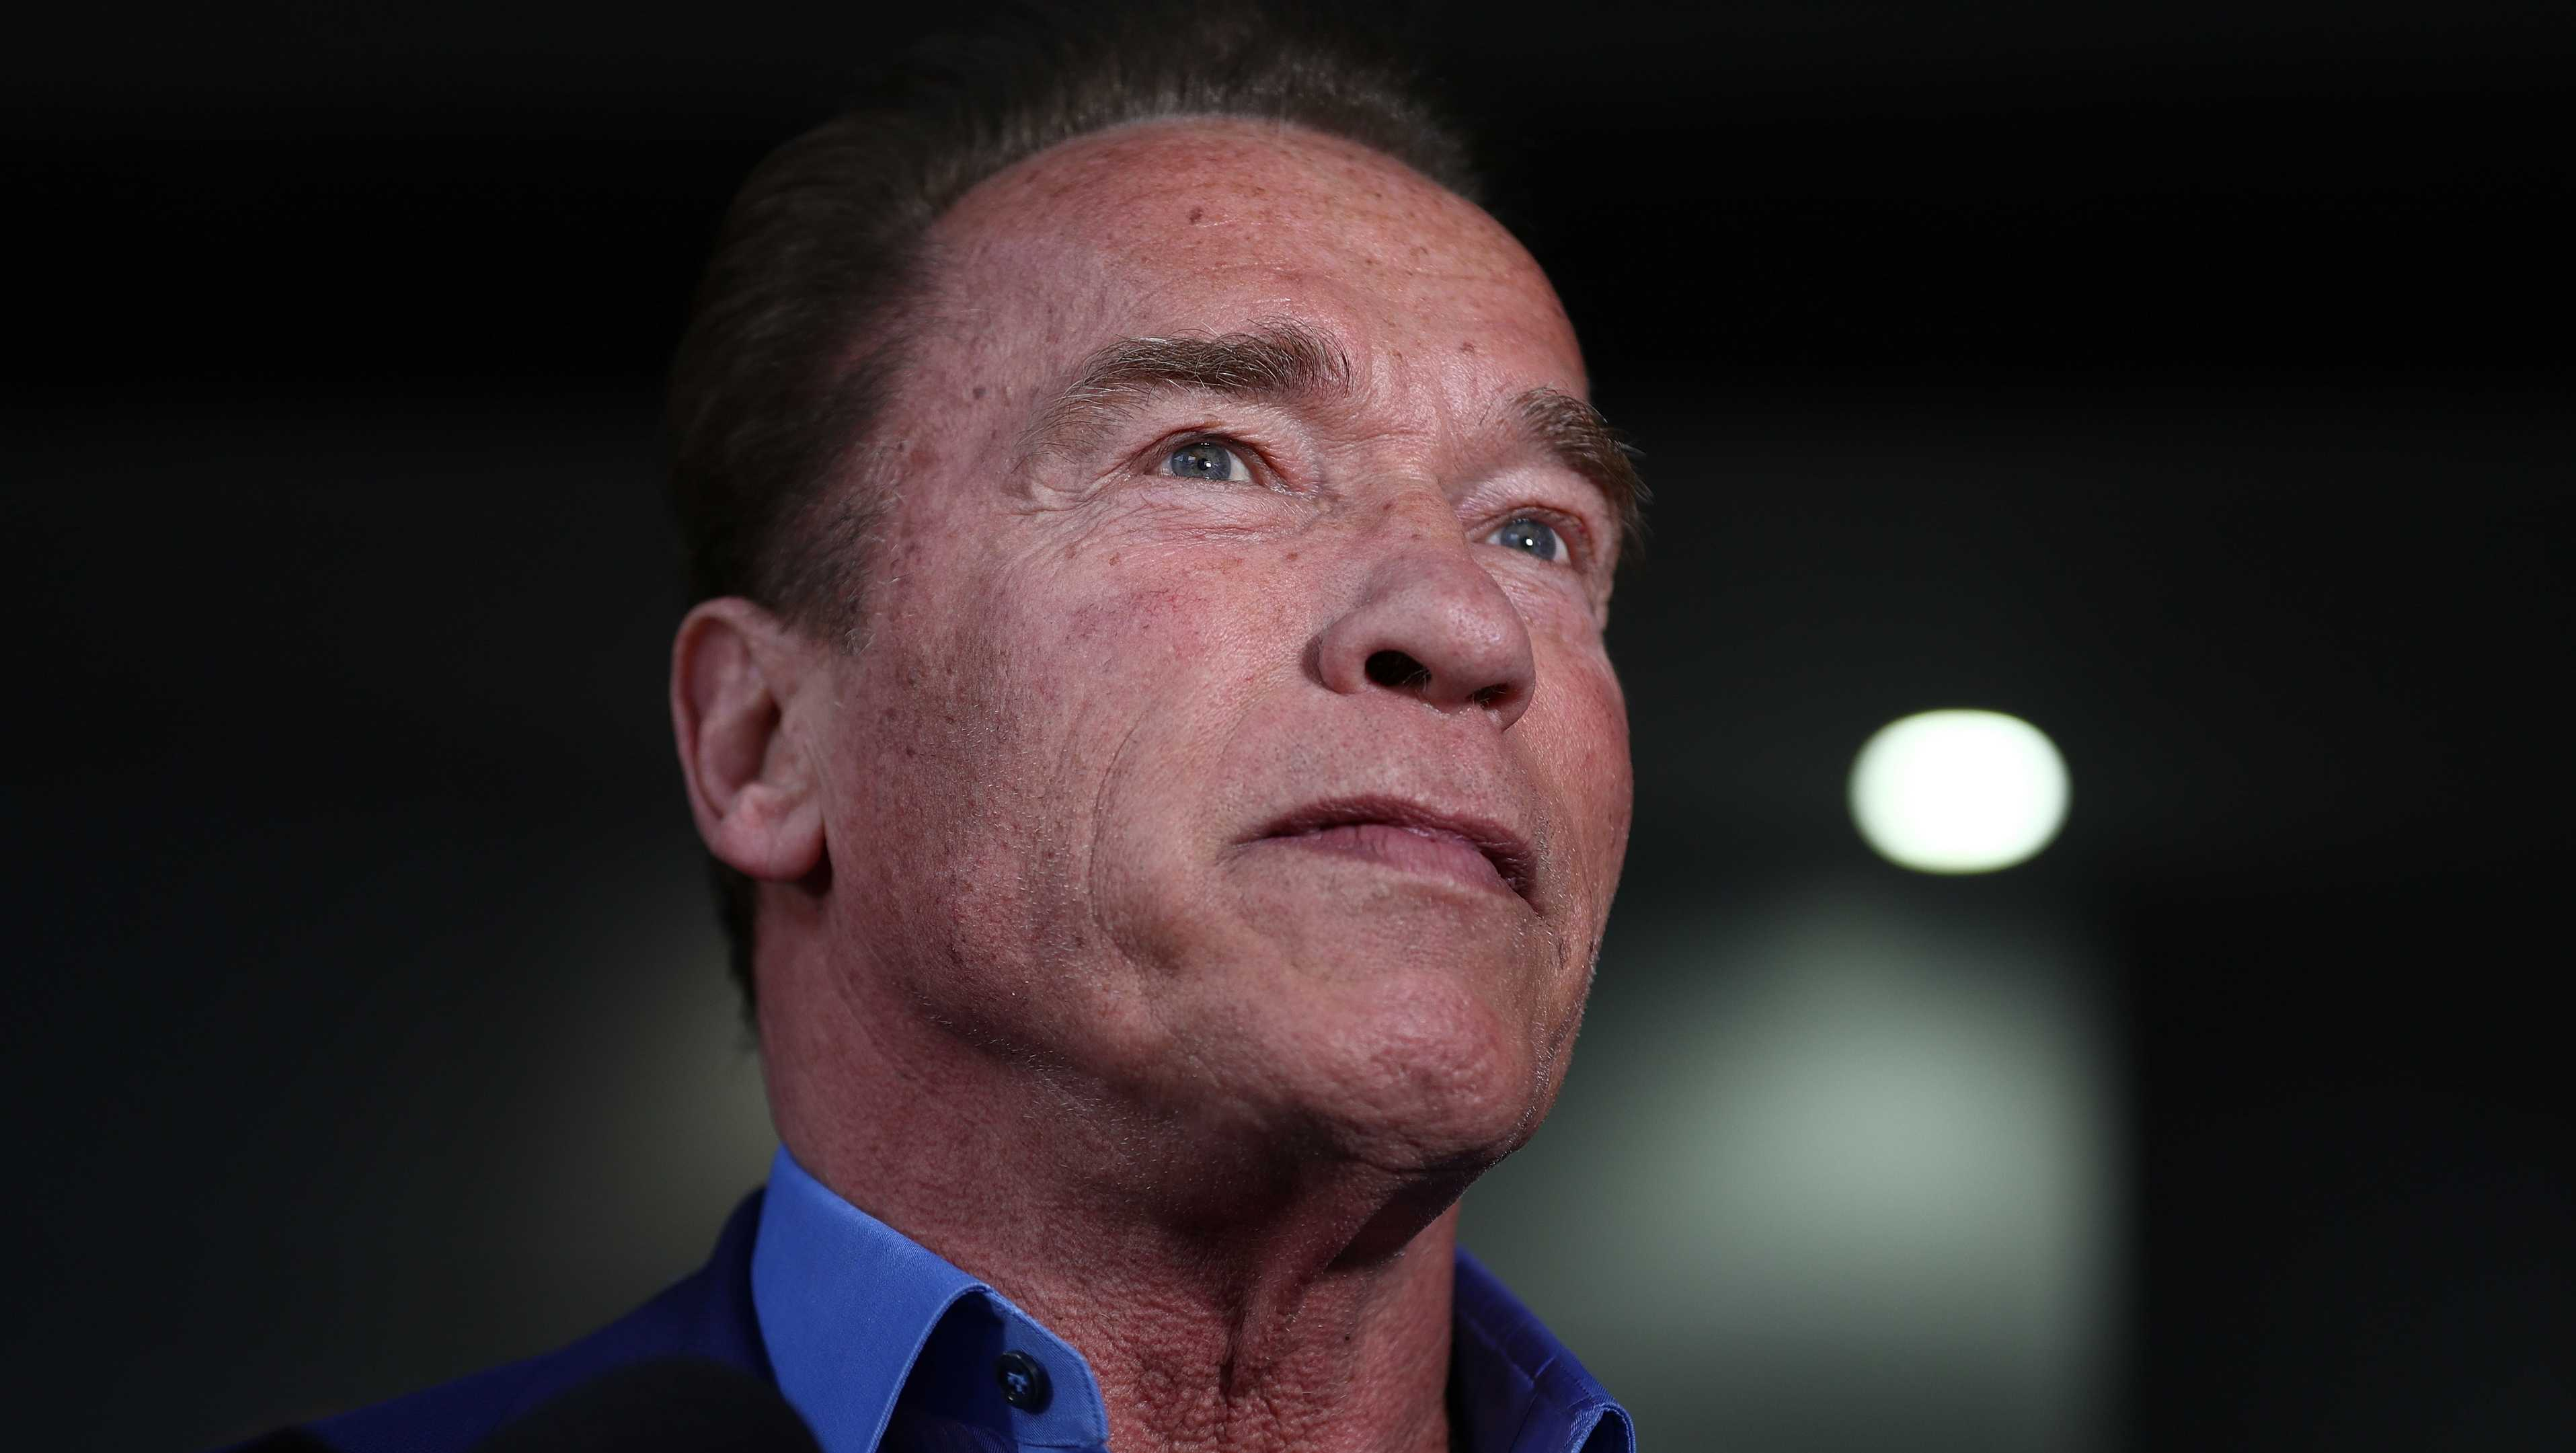 Arnold Schwarzenegger speaks during a press conference at The Melbourne Convention and Exhibition Centre on March 16, 2018.